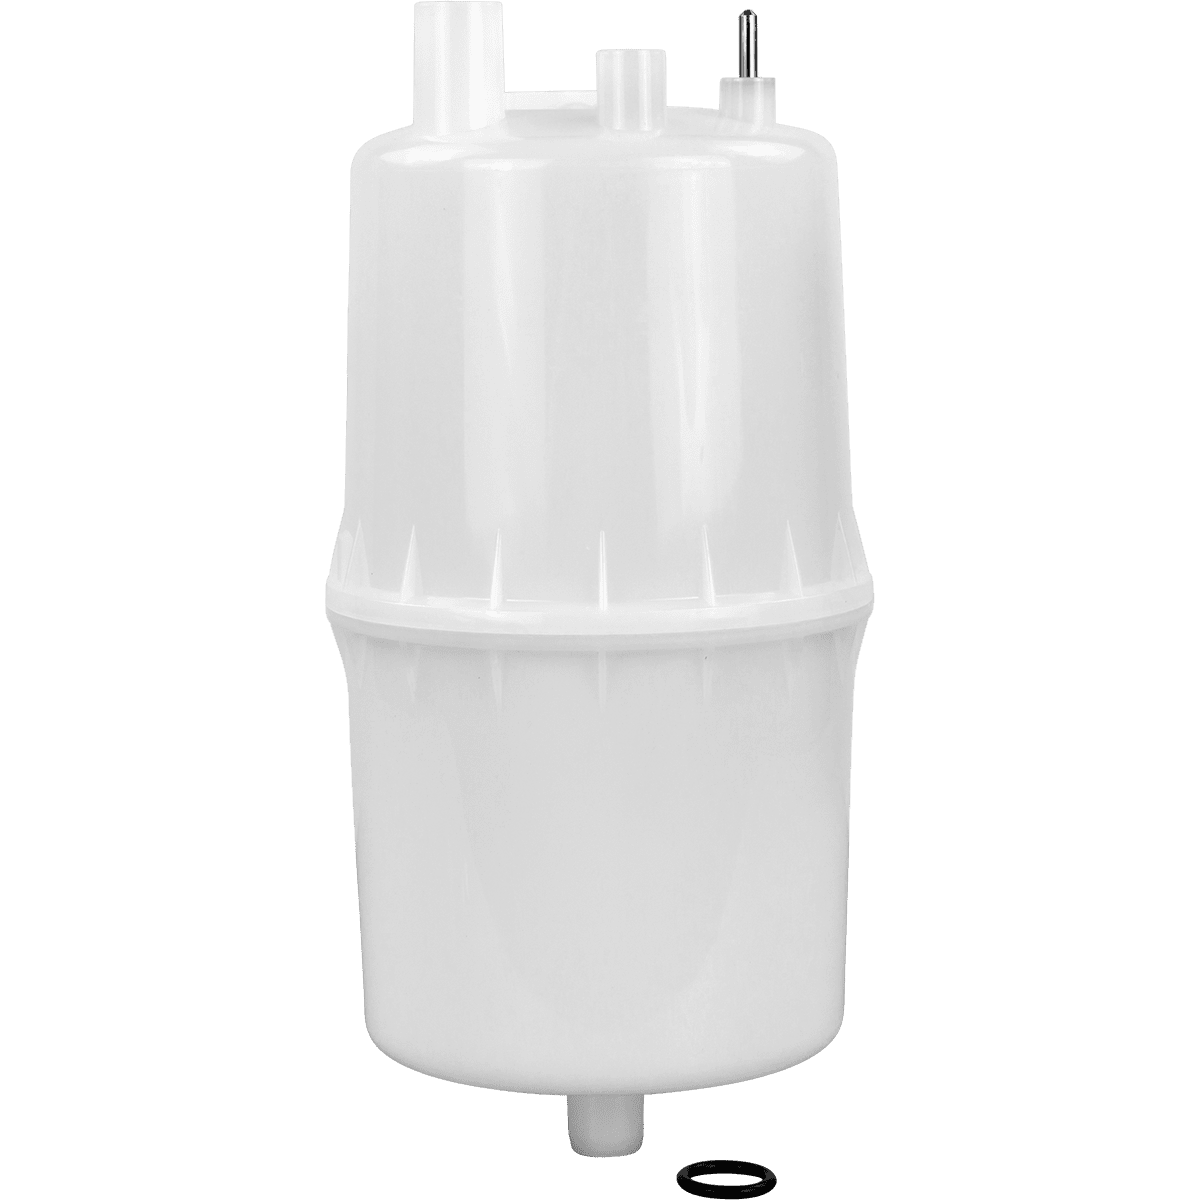 Aprilaire 202aac Steam Humidifier Cylinder (fits Nortec® 202 And Honeywell® Hm700acyl2)